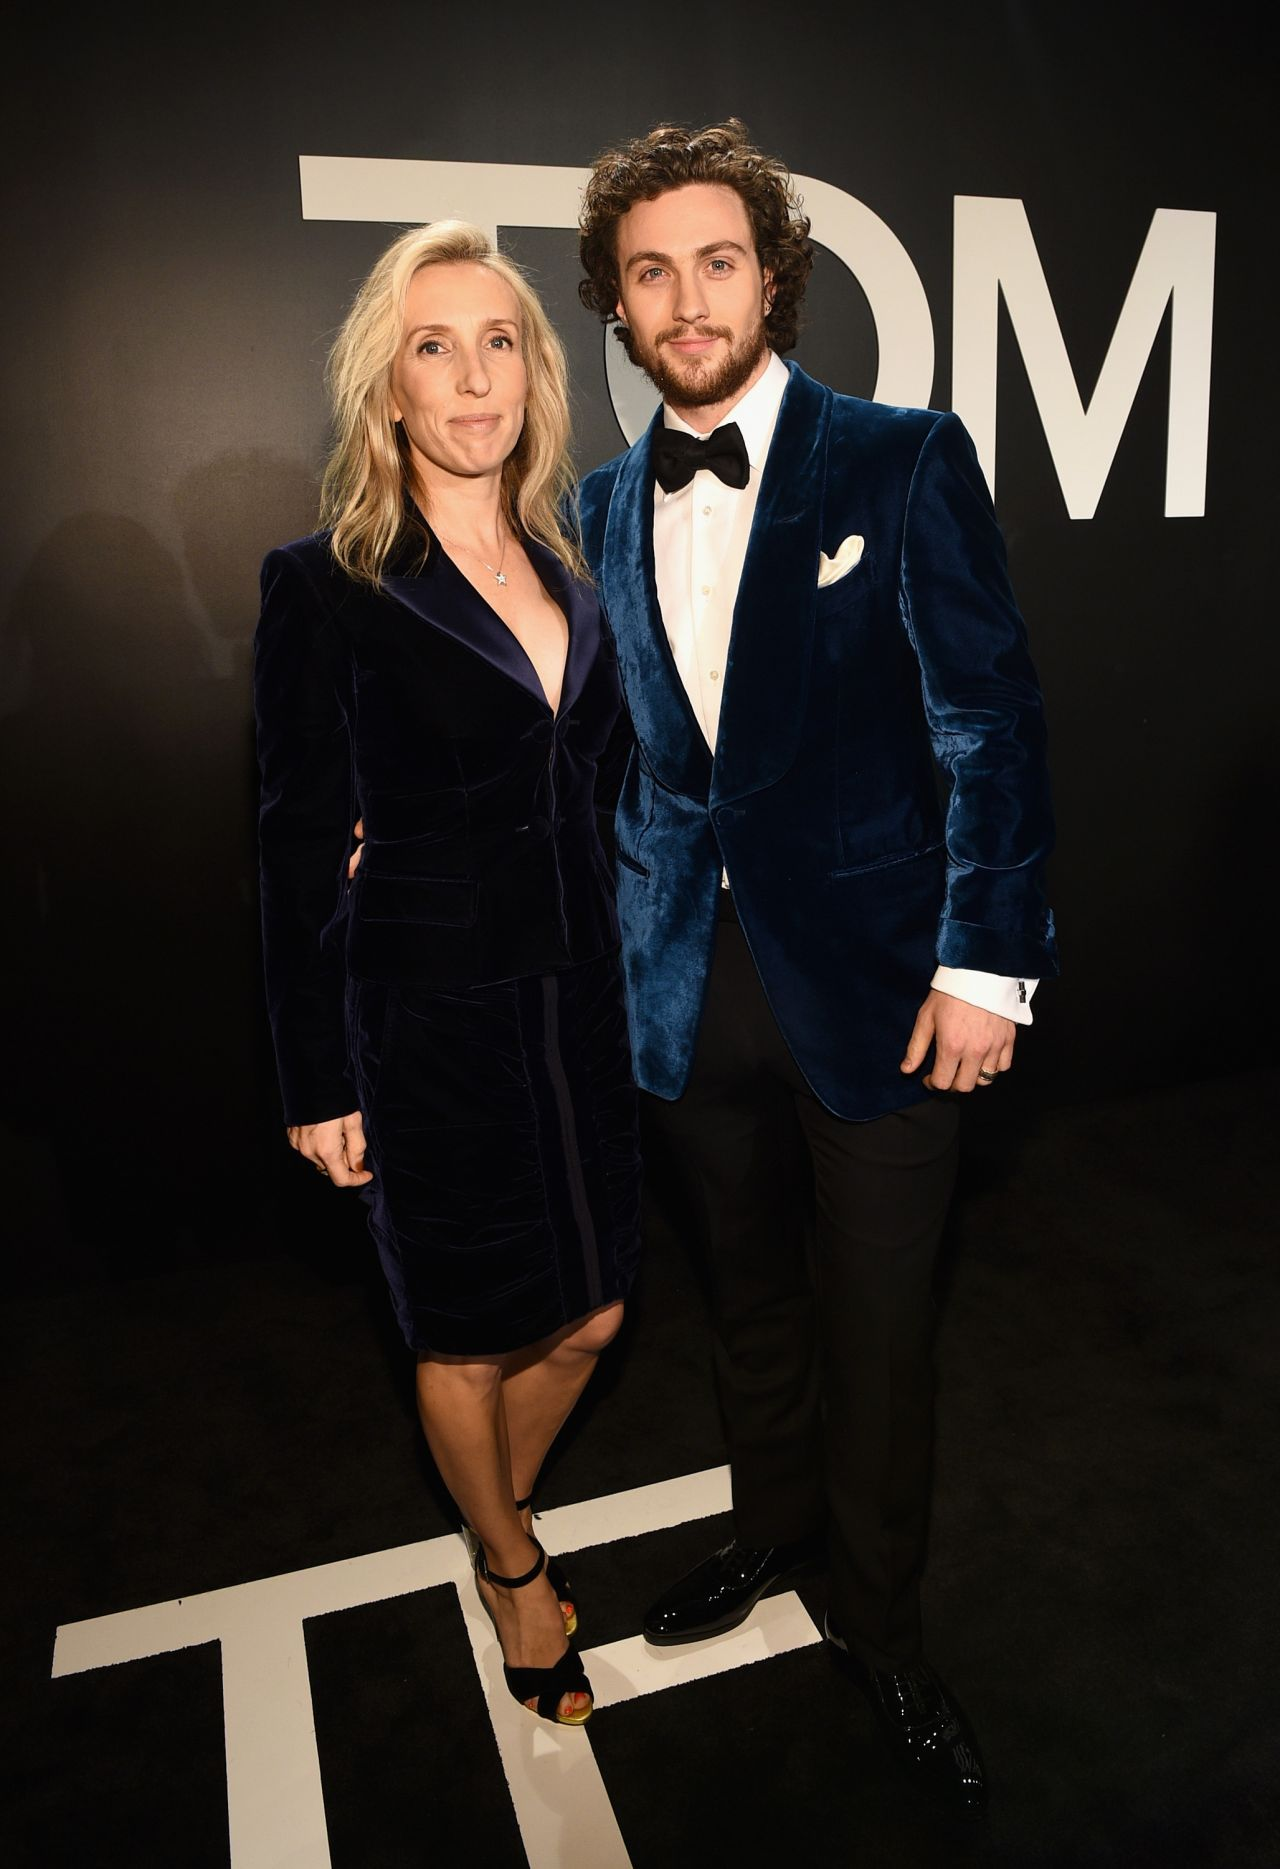 aaron-taylor-johnson-tom-ford-autumn-winter-2015-womenswear-collection-presentation-in-los-angeles_2